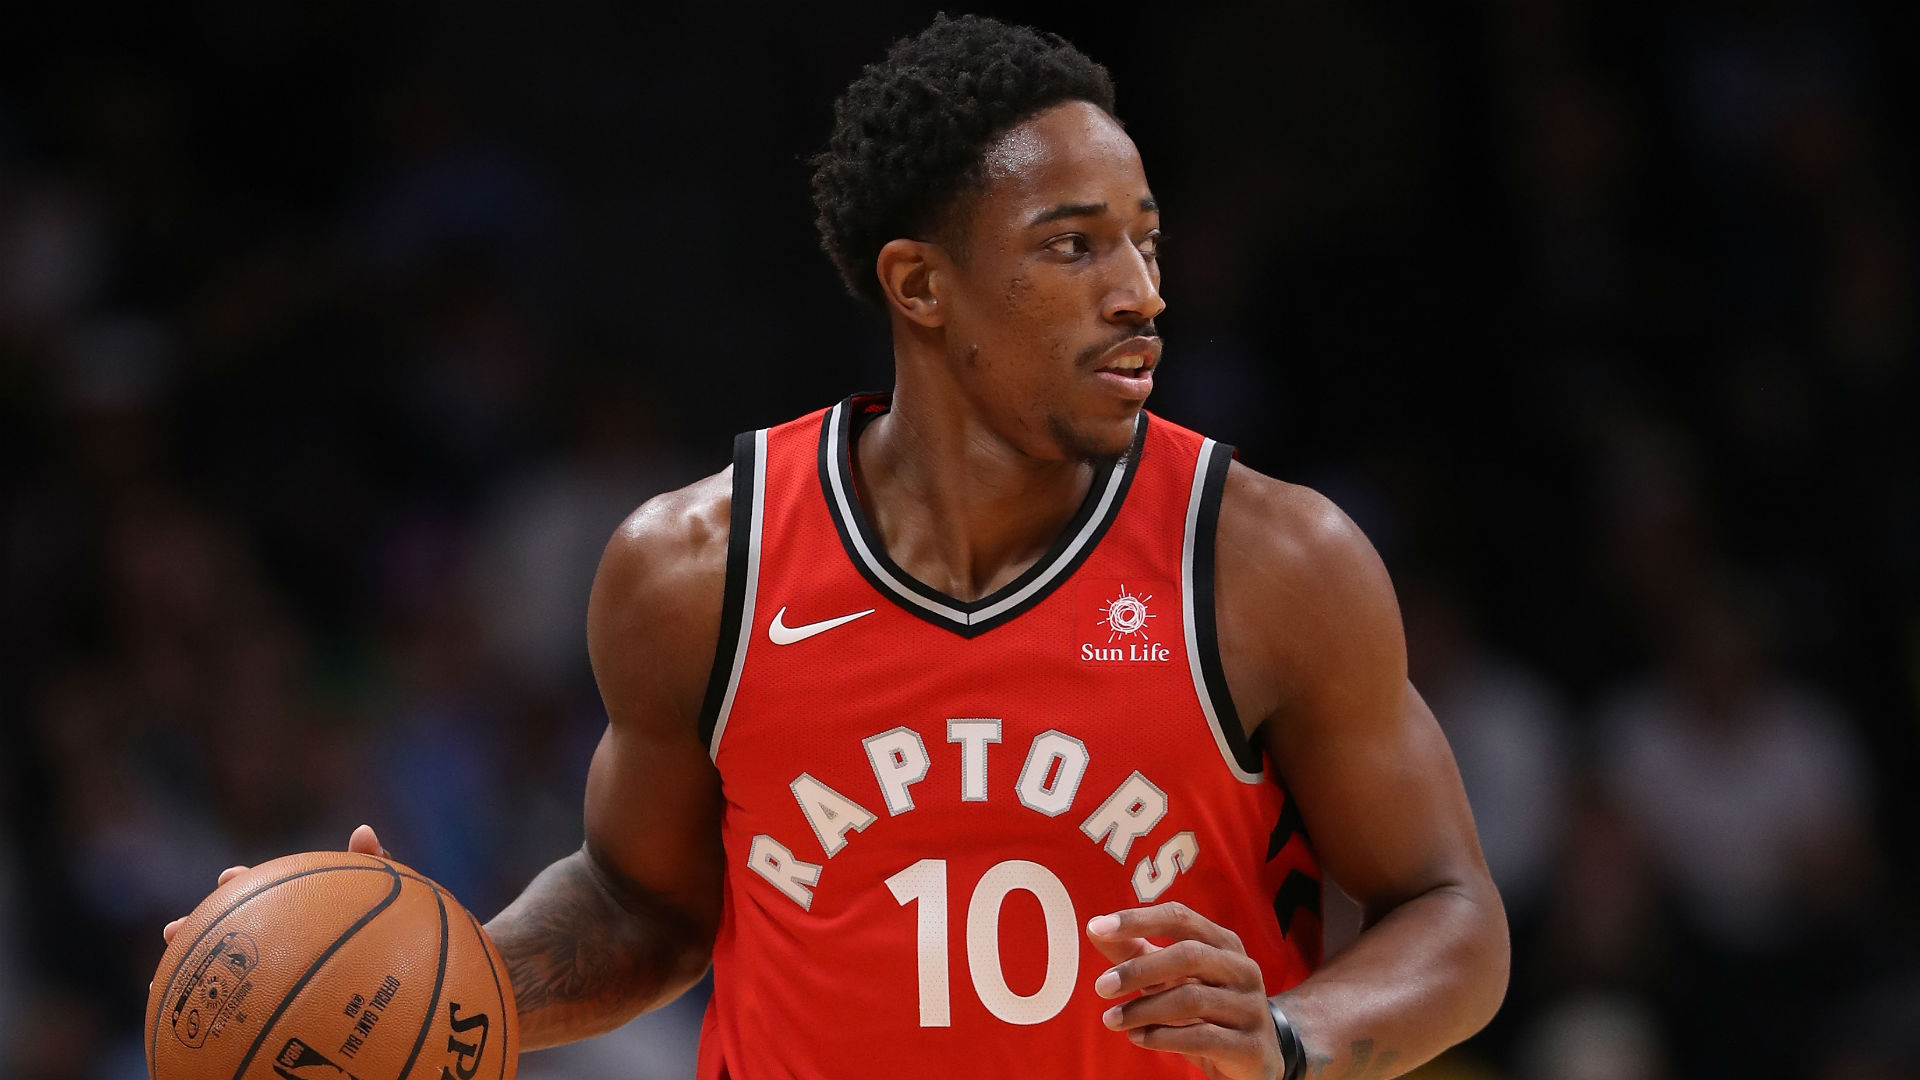 Washington Wizards: Wizards drop Game 1 to surging Ibaka and Raptors